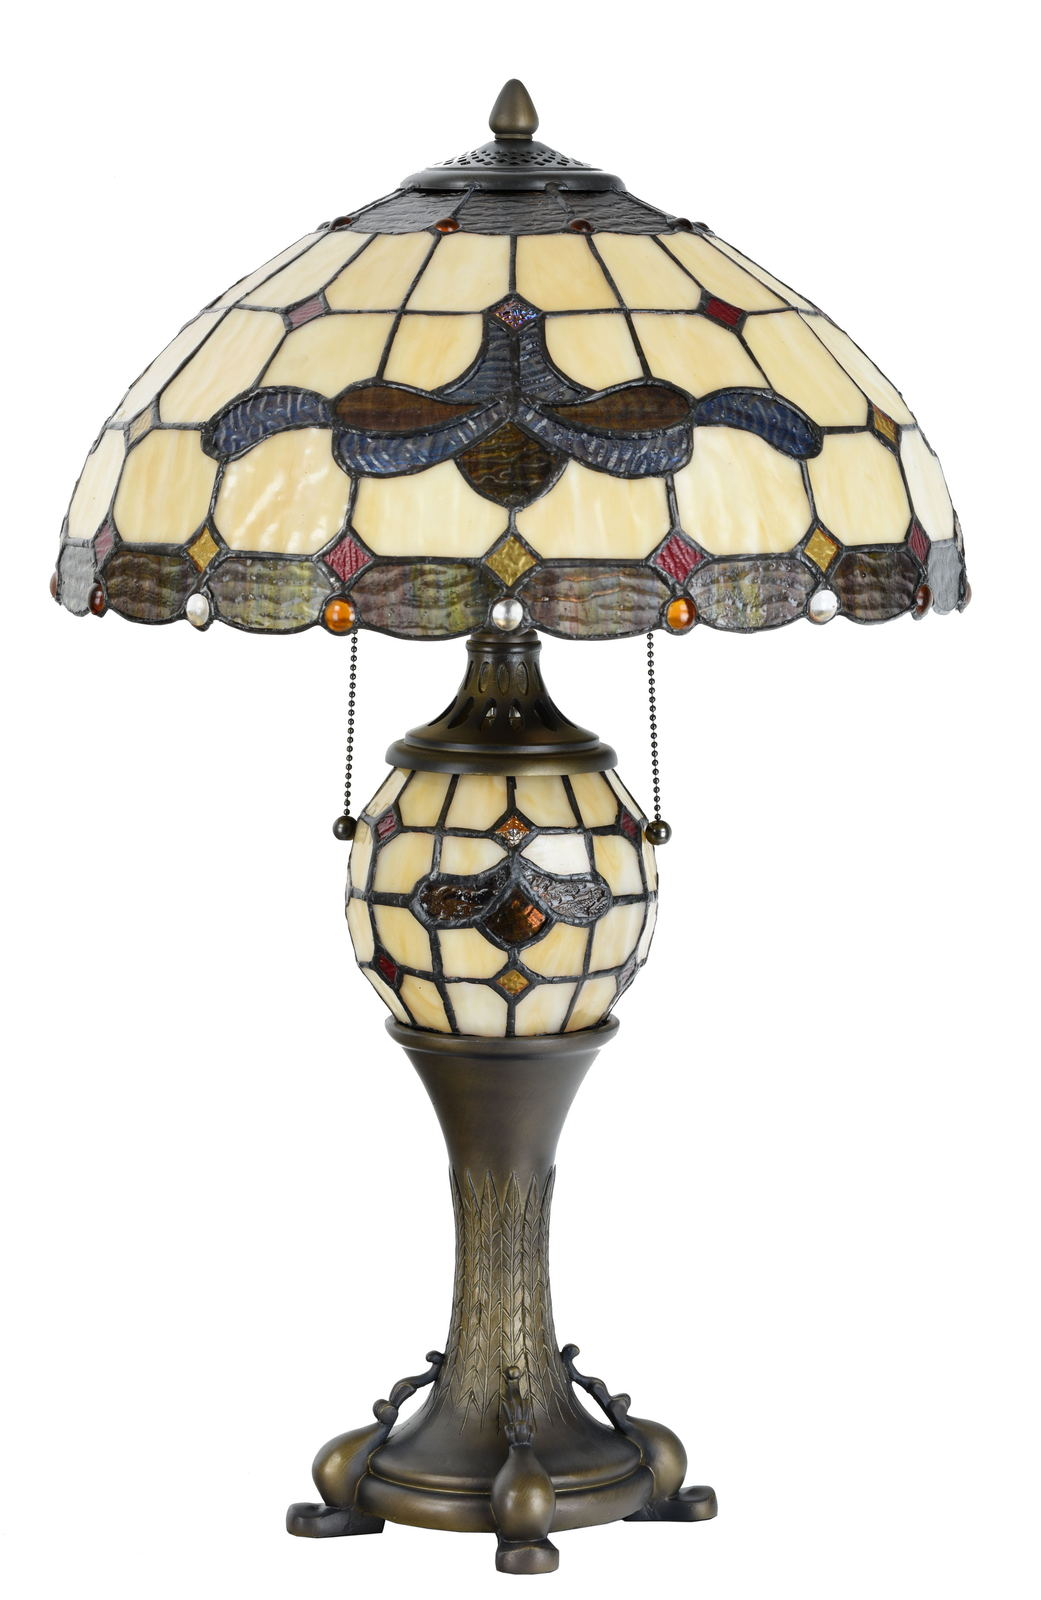 Tiffany Style Table Lamp Victorian Desk Lamp Stained Glass Home Décor Lamp